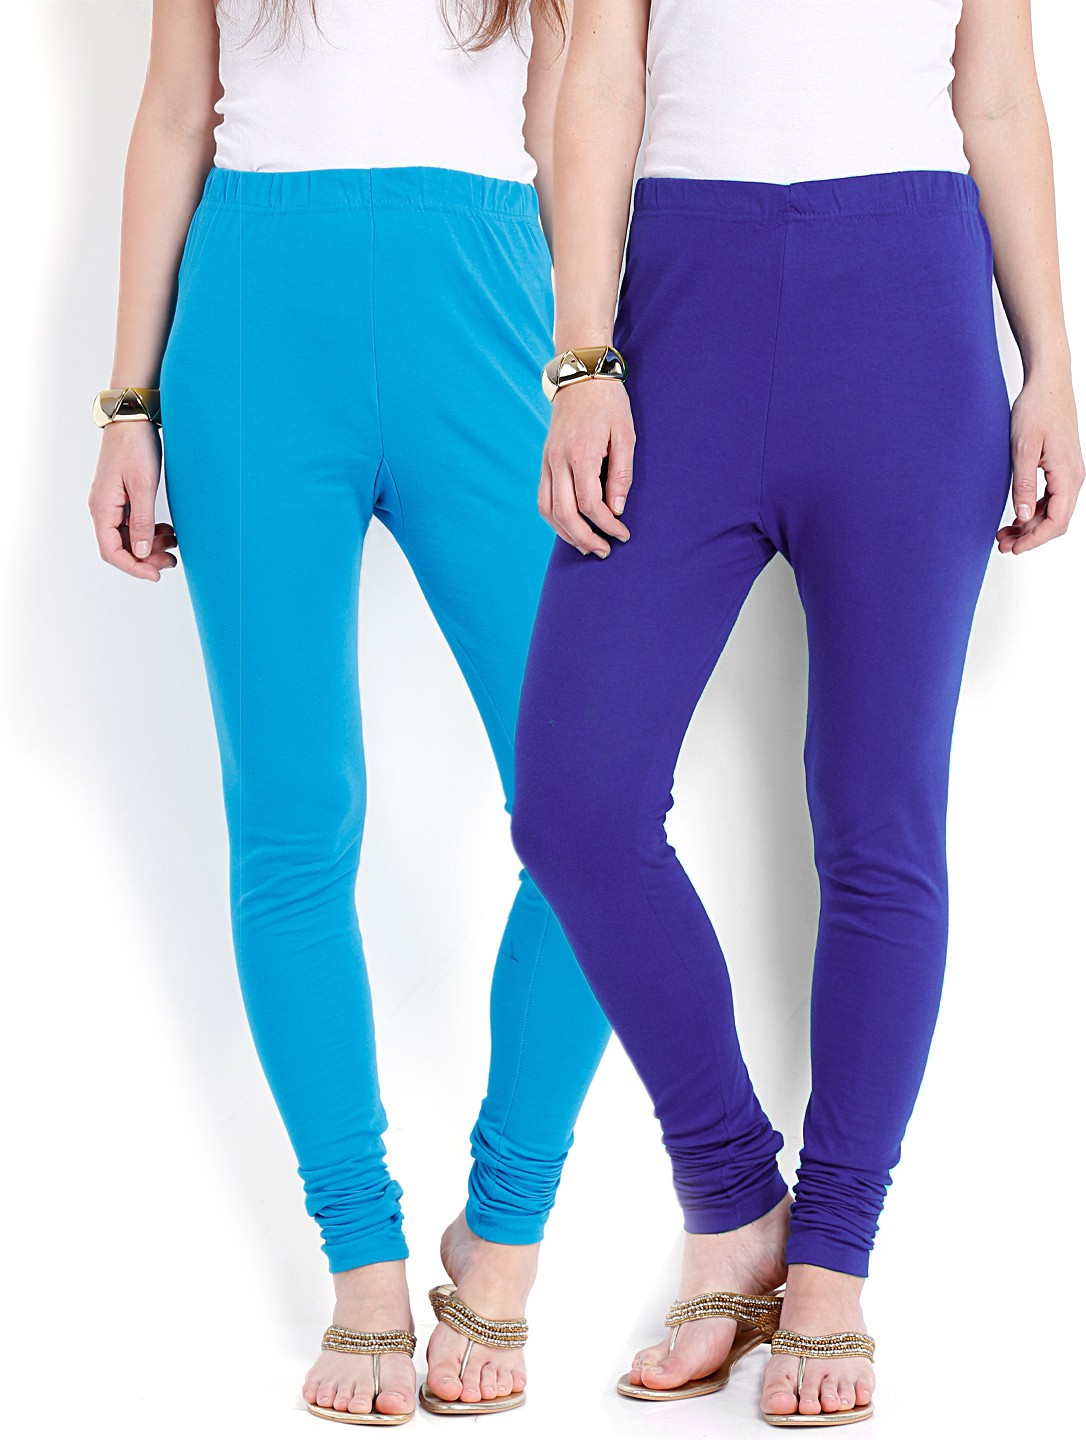 Ten on Ten Womens Light Blue, Blue Leggings(Pack of 2)